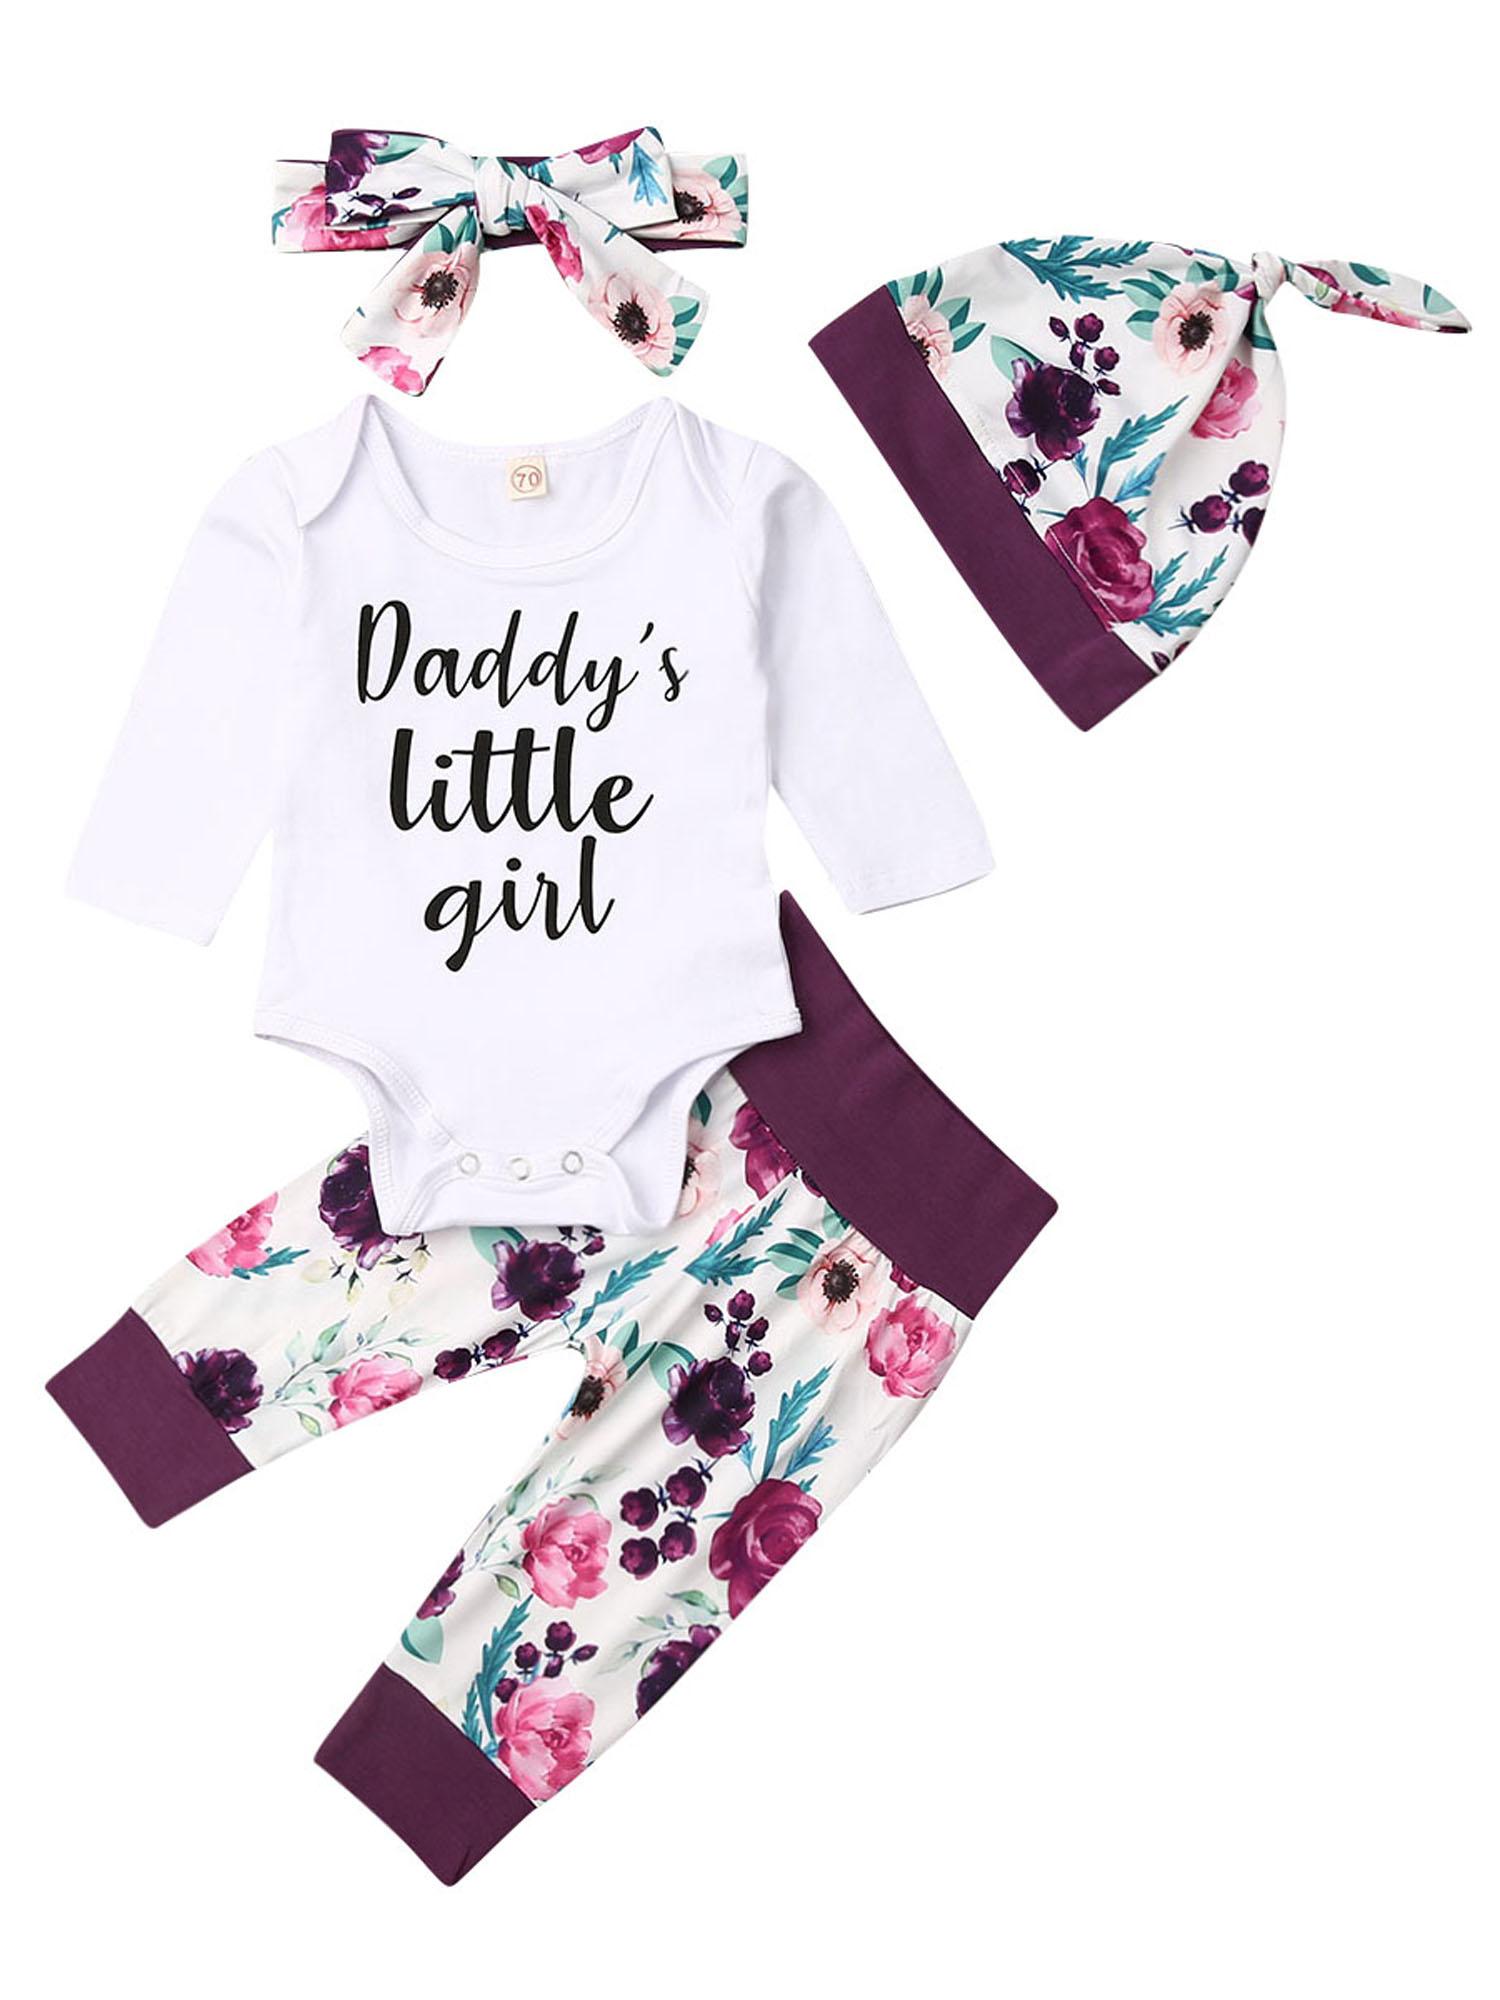 Latest Newborn Infant Baby Girl Romper Pink Top Jumpsuit Pant Outfit Clothes Set